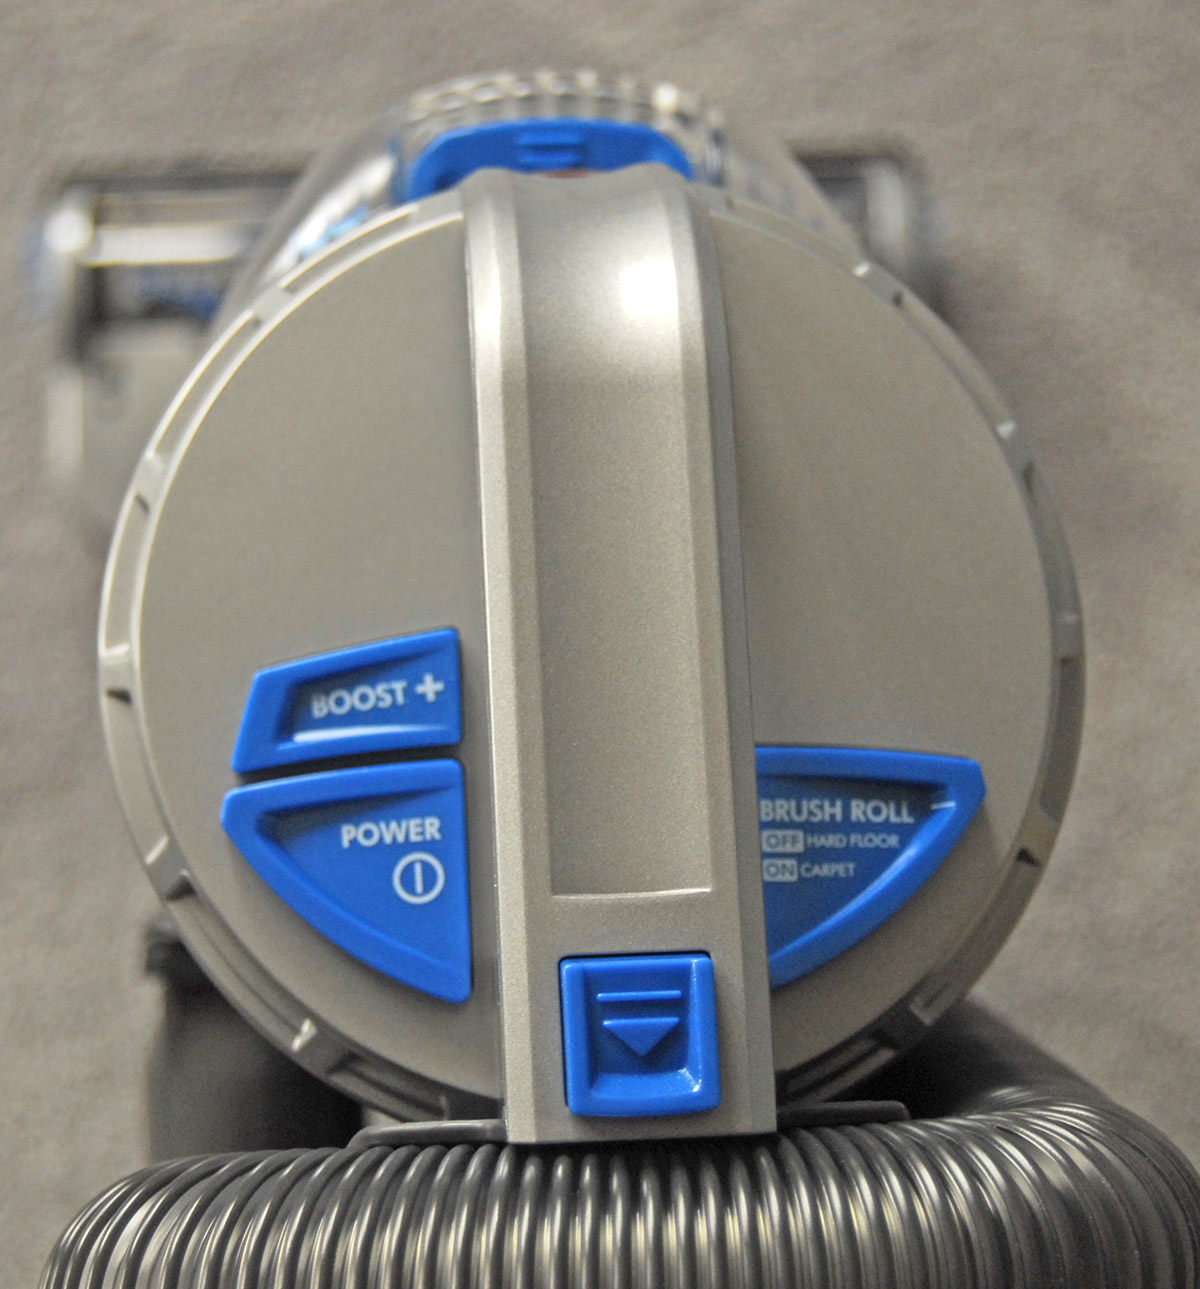 hoover air cordless lift boost plus